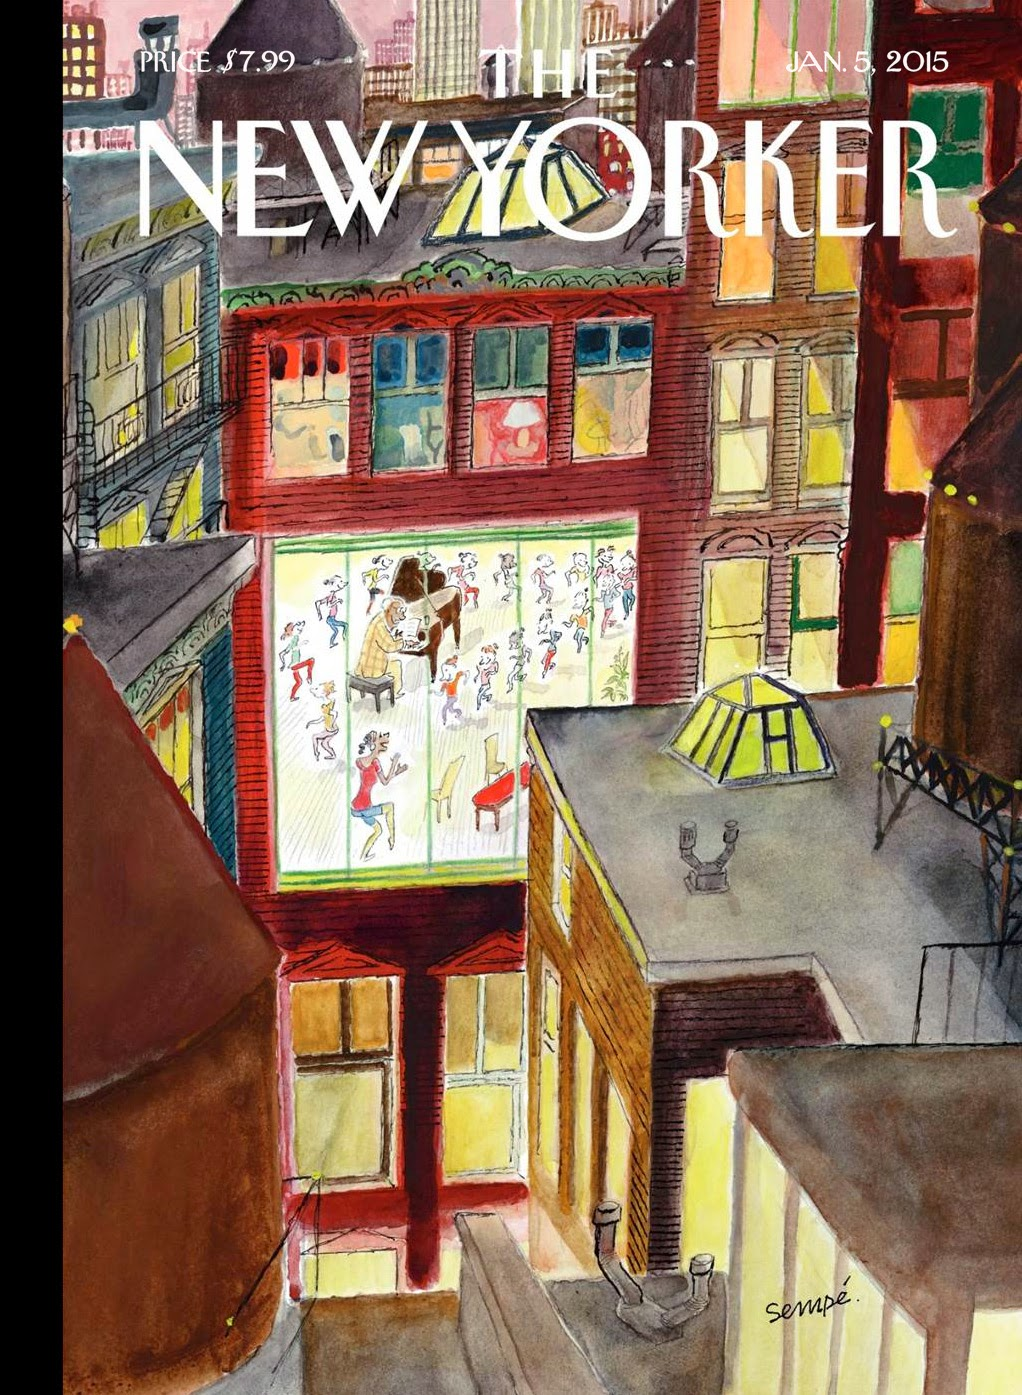 la belle illustration semp the new yorker couverture 5 janvier 2015. Black Bedroom Furniture Sets. Home Design Ideas